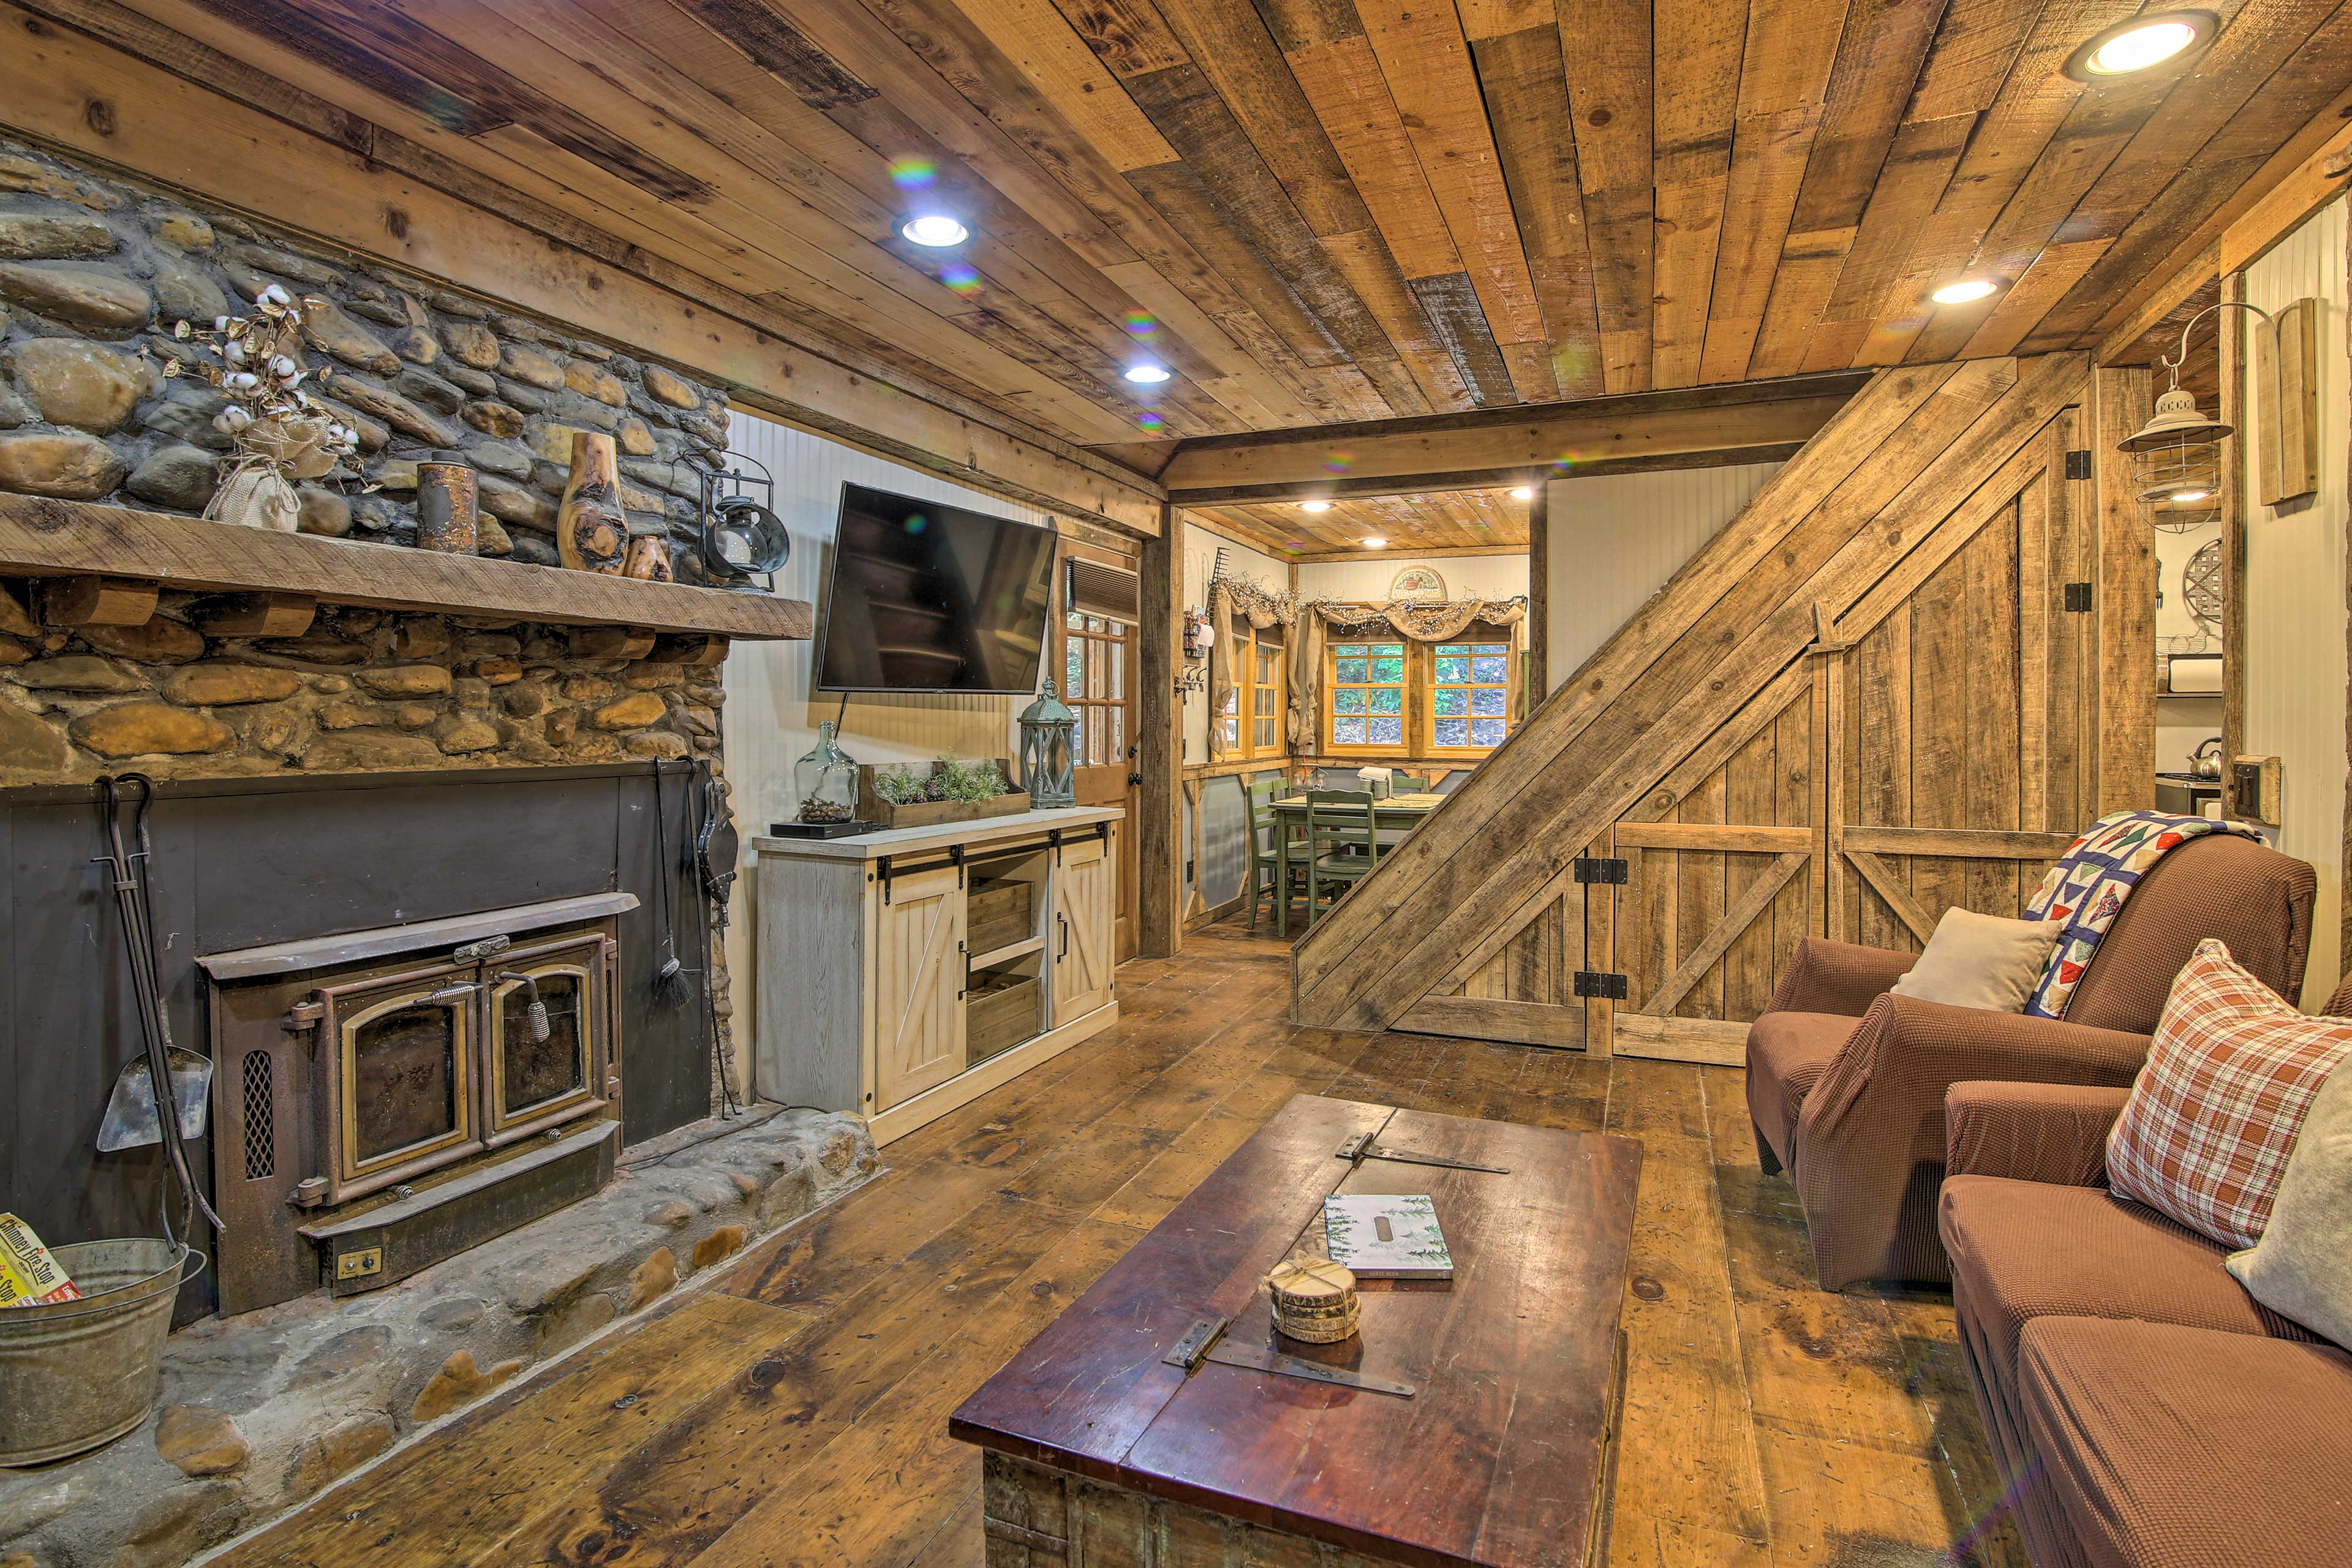 The living room has a fireplace with rubble masonry and eclectic, rustic decor.